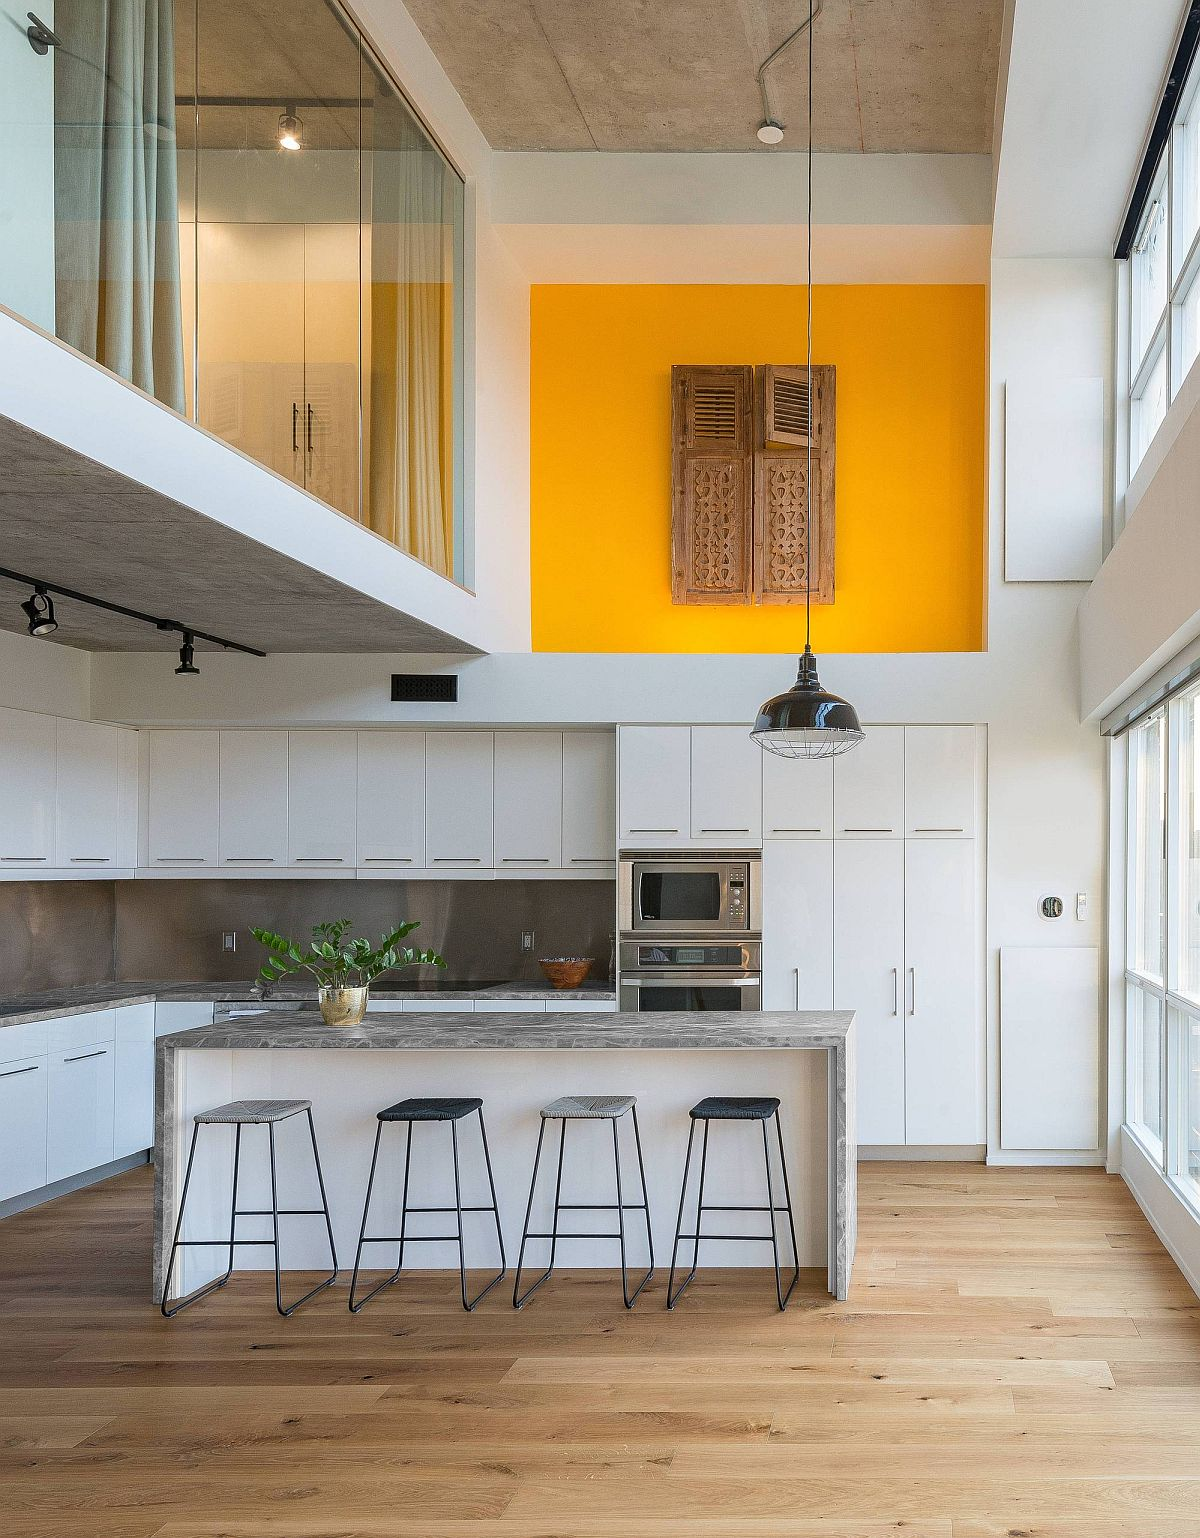 Fabulous contemporary kitchen with double-height deisgn and a splash of yellow